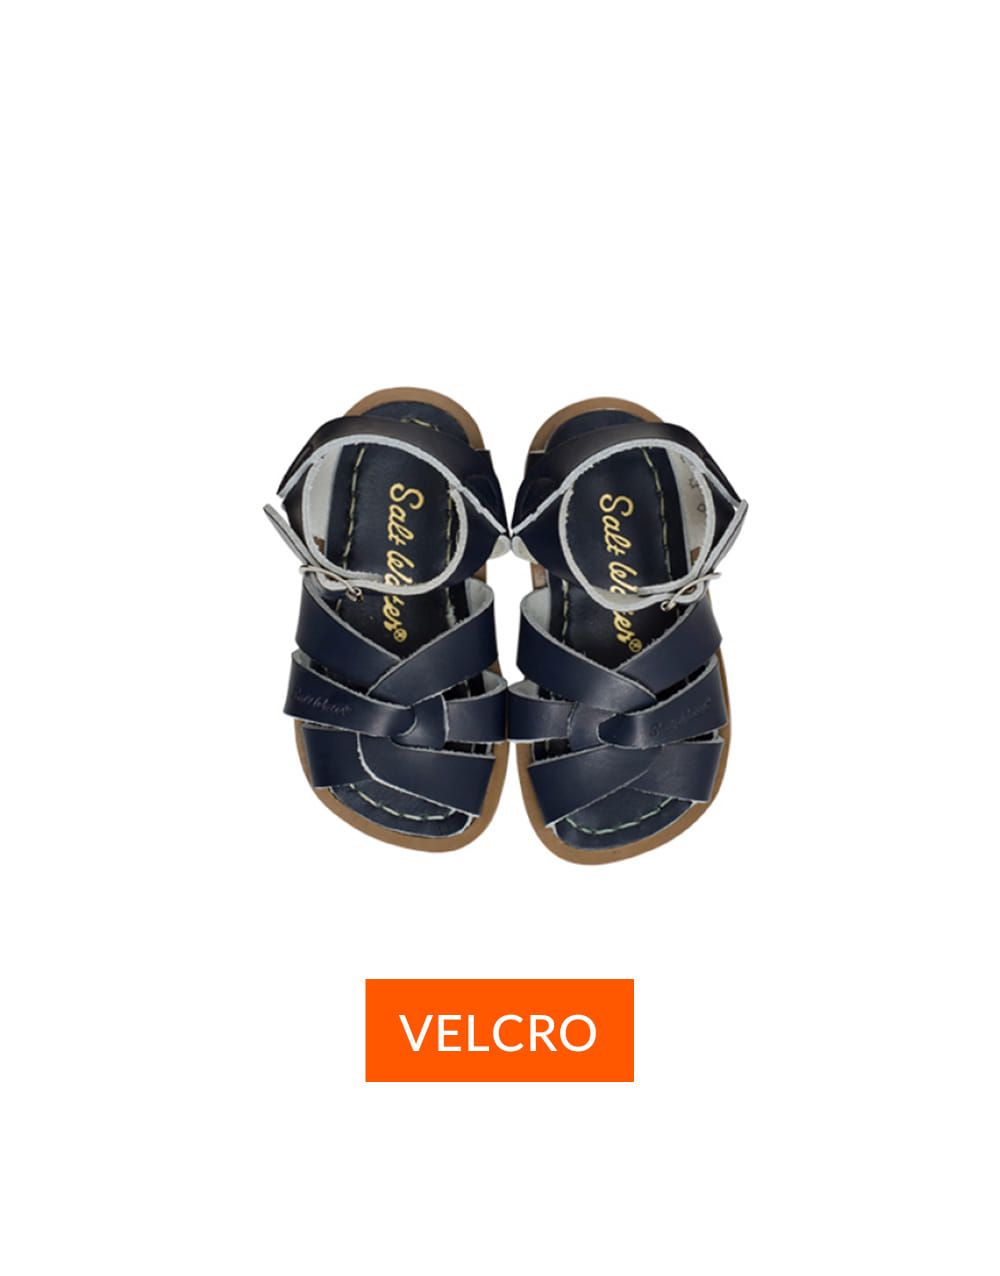 SALT-WATER SANDAL  CHILD VELCRO ORIGINAL  Navy